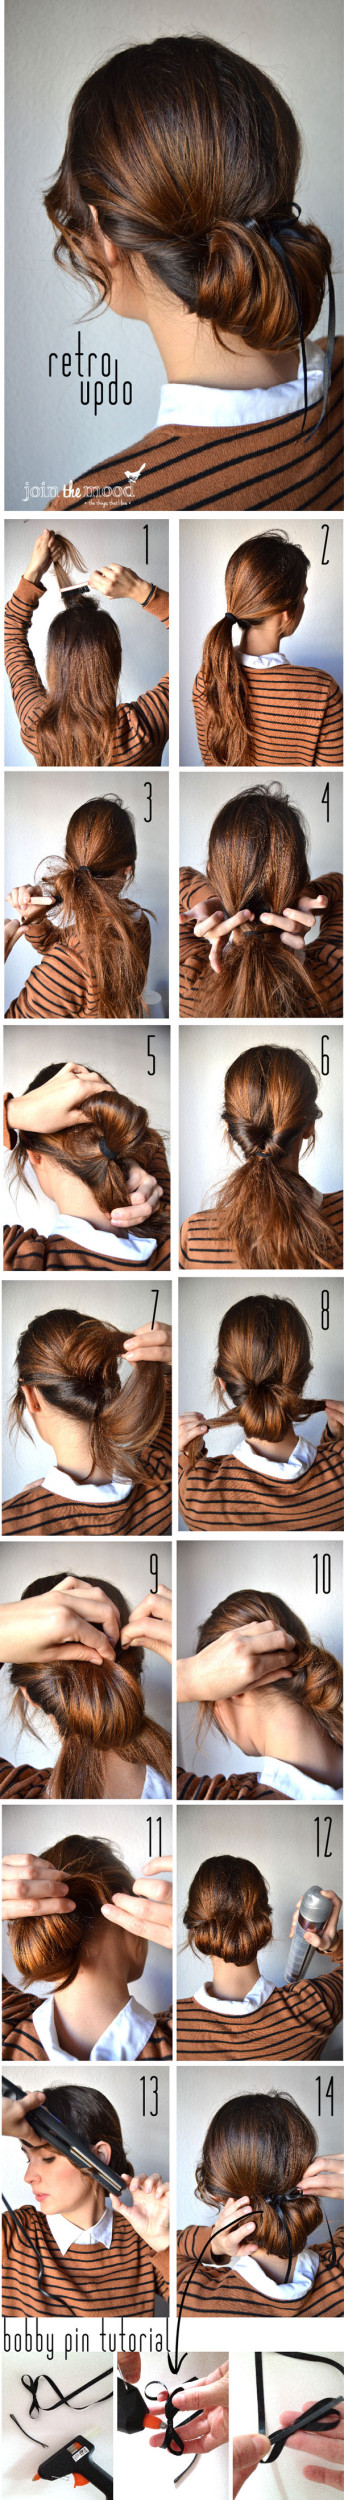 quick and easy everyday hairstyle ideas moños pinterest